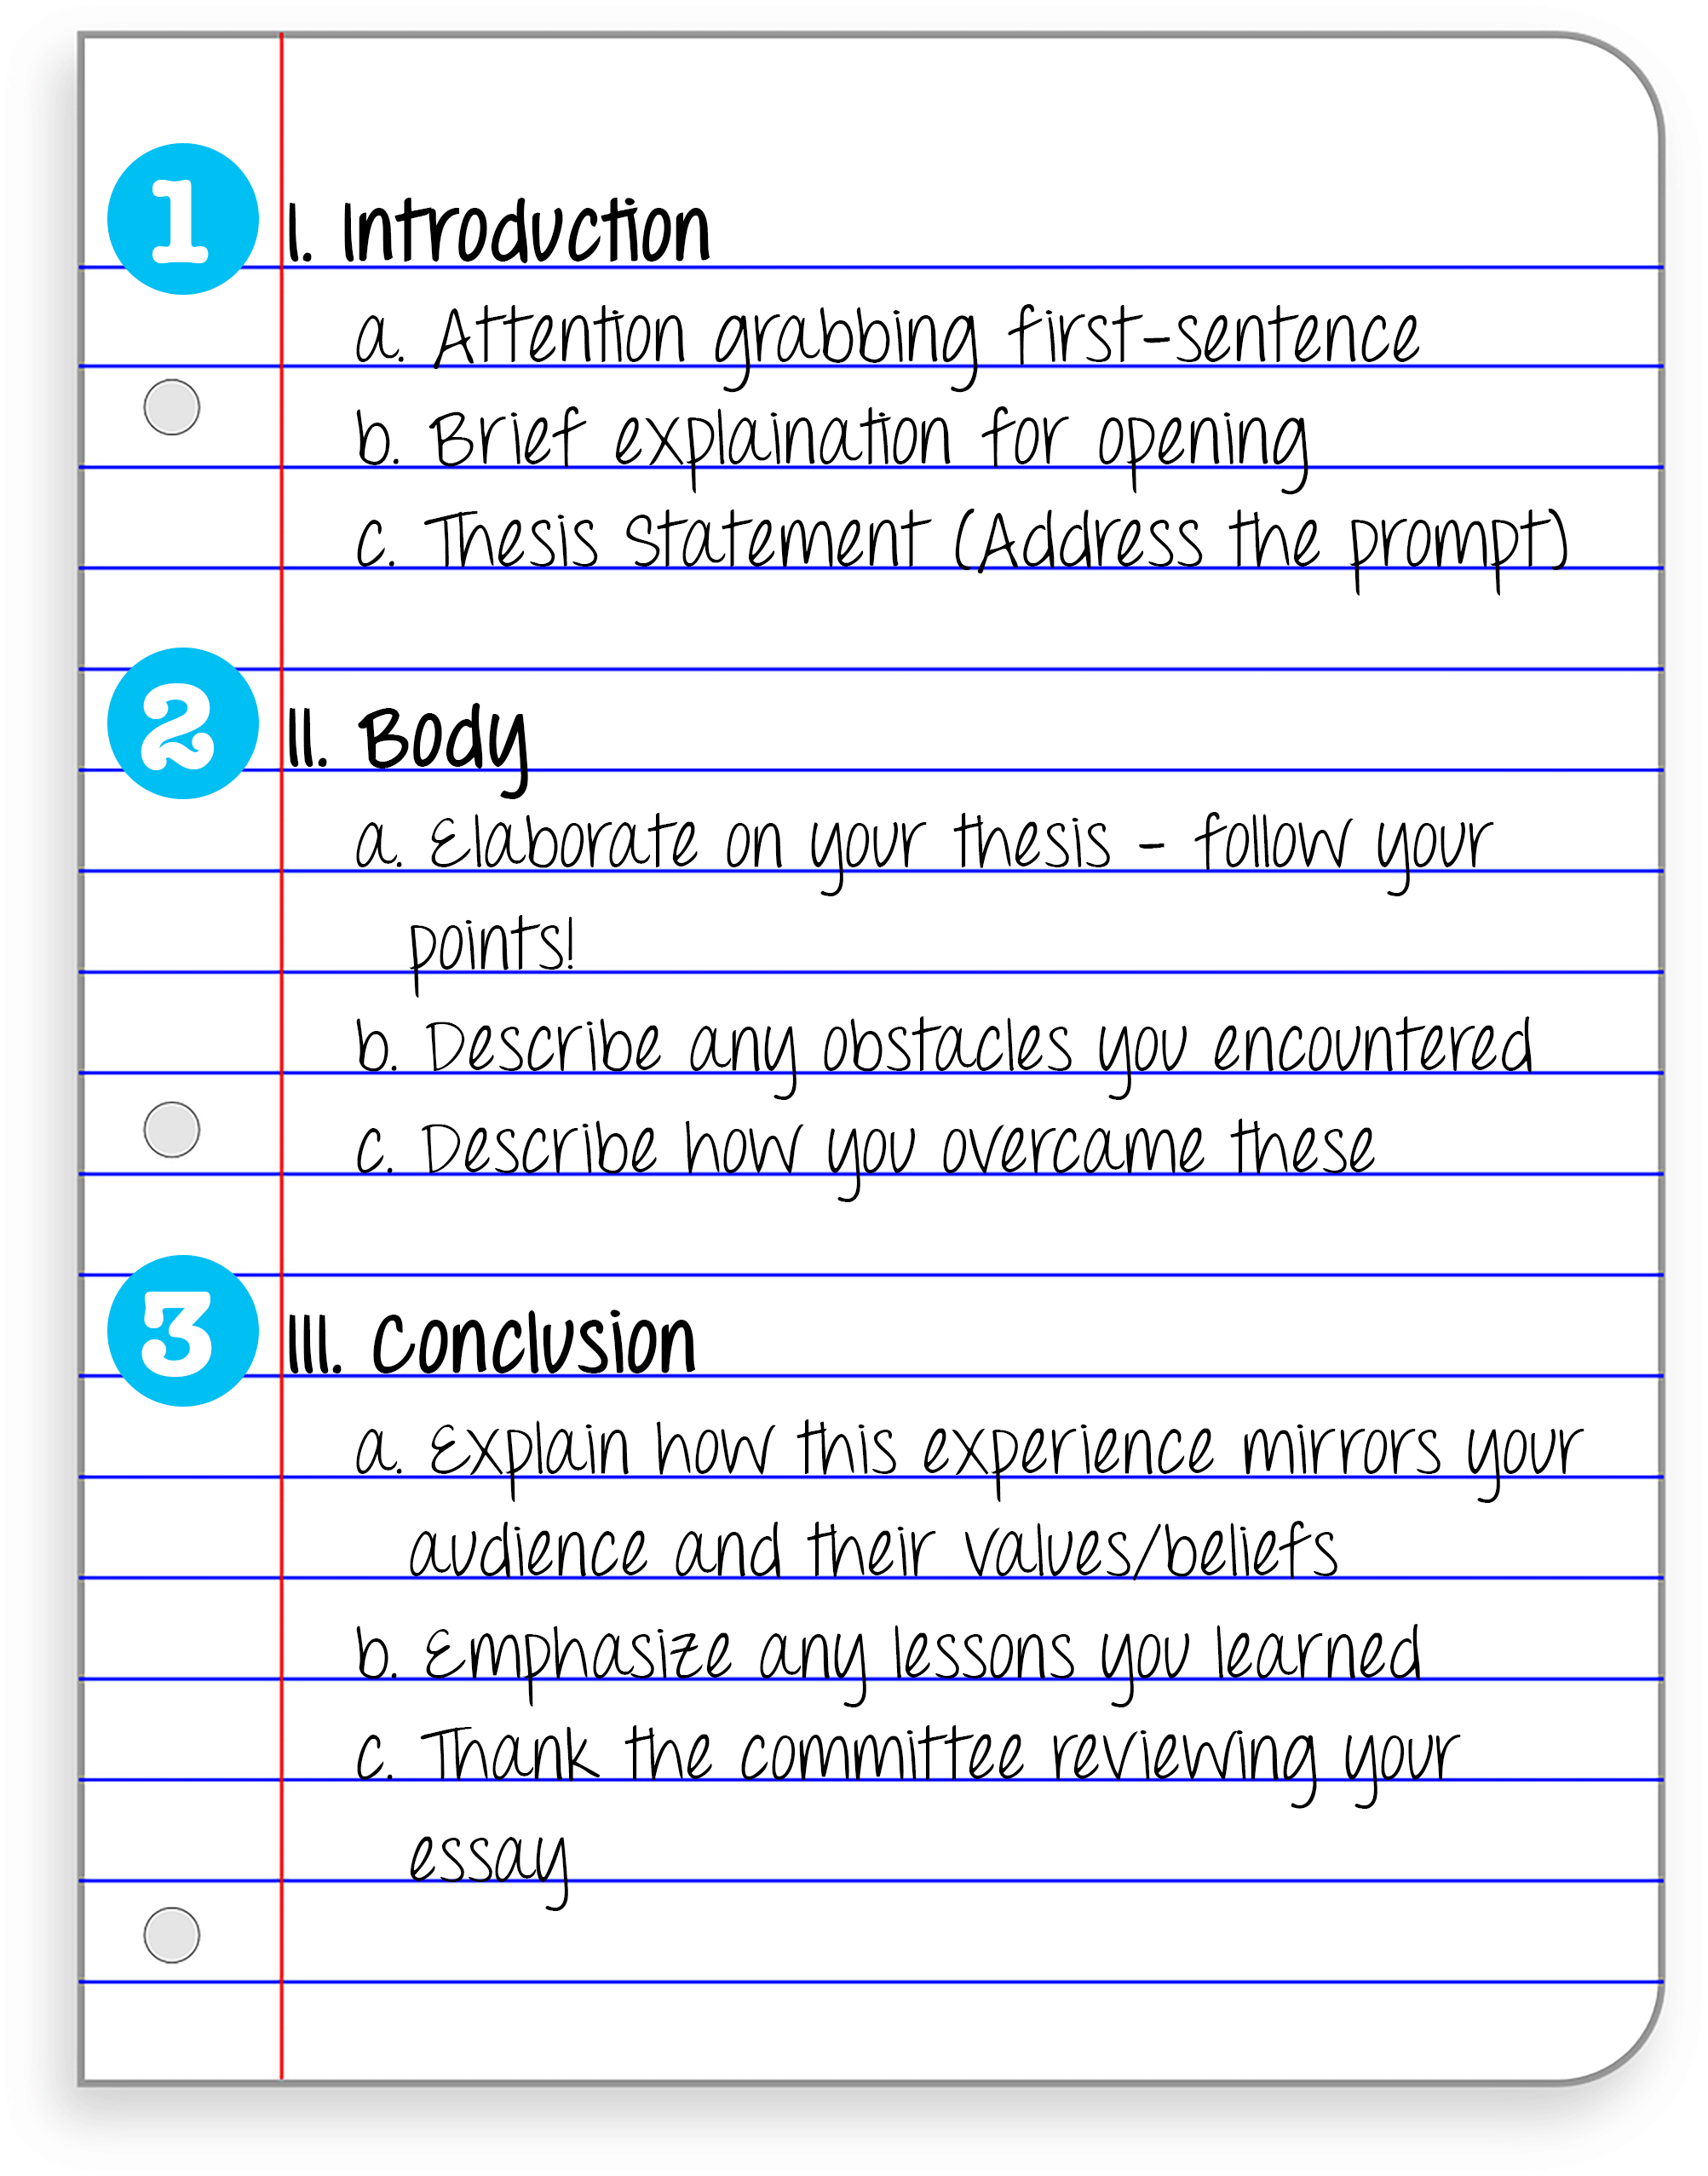 process of writing a good college essay Want to write the perfect college application essay get professional help from prepscholar your dedicated prepscholar admissions counselor will craft your perfect college essay, from the ground up we'll learn your background and interests, brainstorm essay topics, and walk you through the essay drafting process, step-by-step.